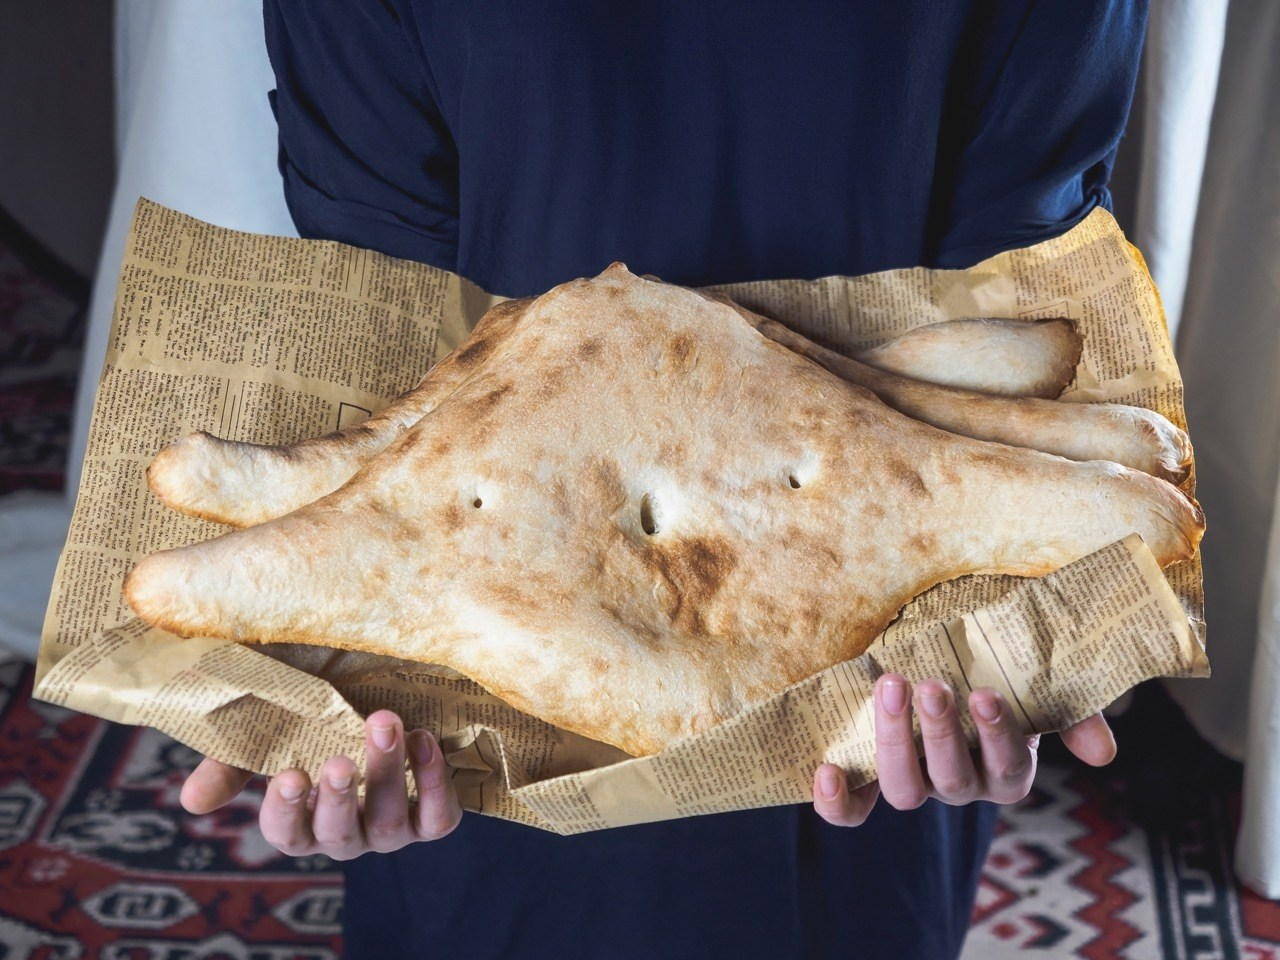 Top Things To Do In Tbilisi, Georgia - Make Bread